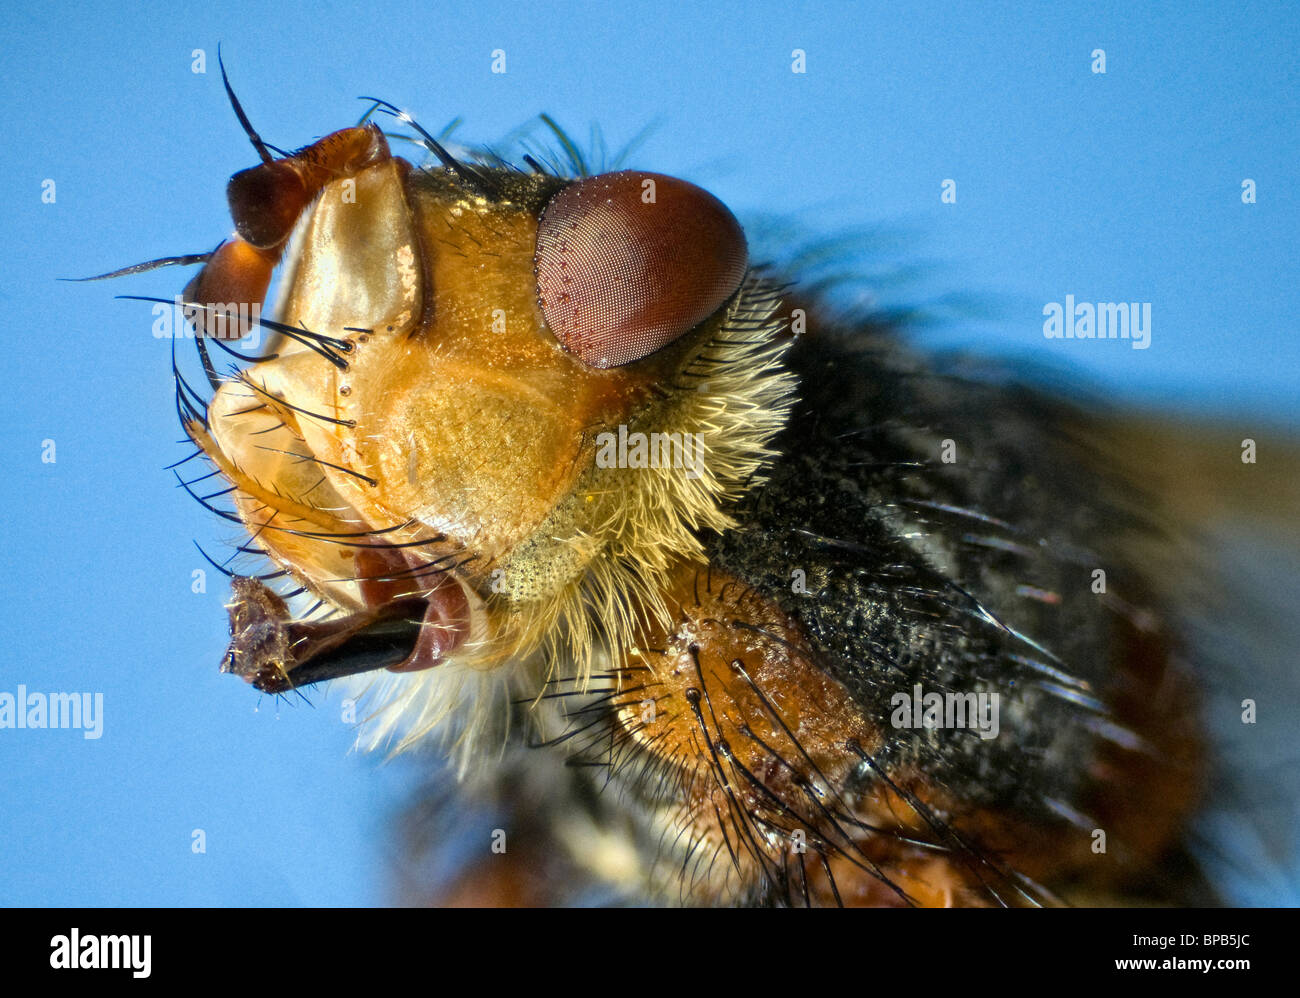 Extreme close up of the head of the fly Larvaevora fera, family Tachinidae showing extended mouthparts. Stock Photo